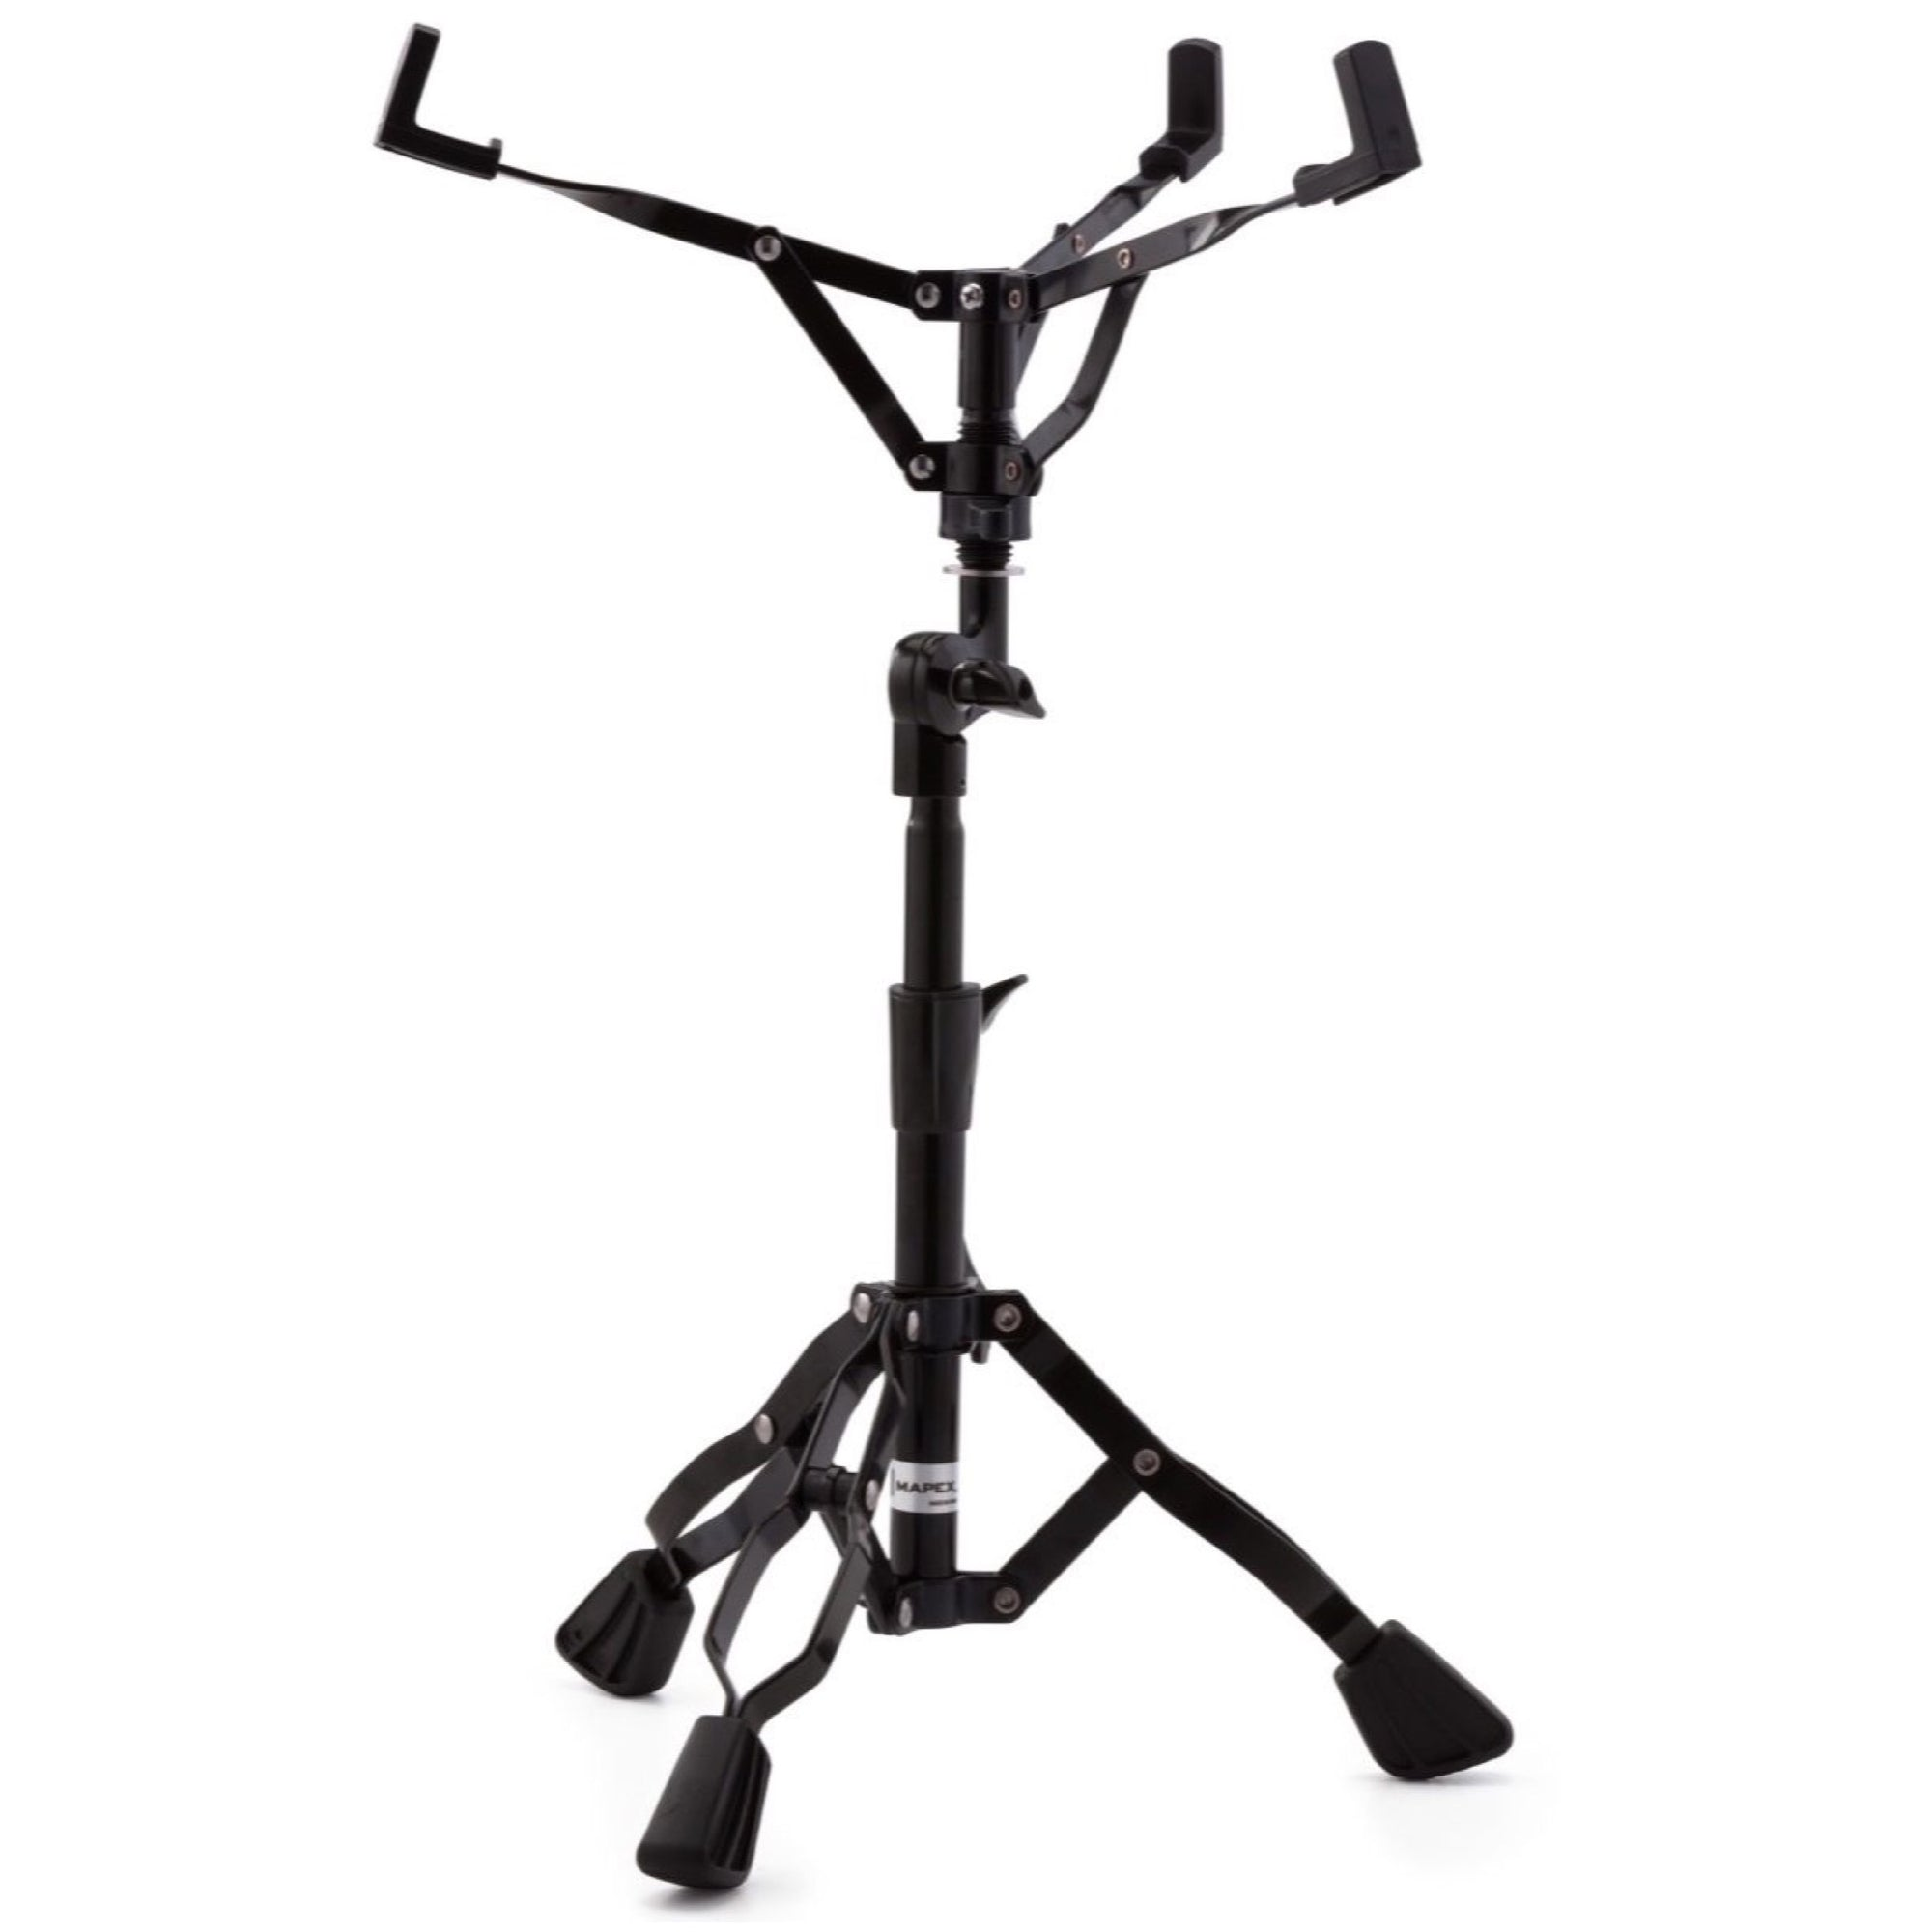 Mapex S400 Double-Braced Snare Stand, Black